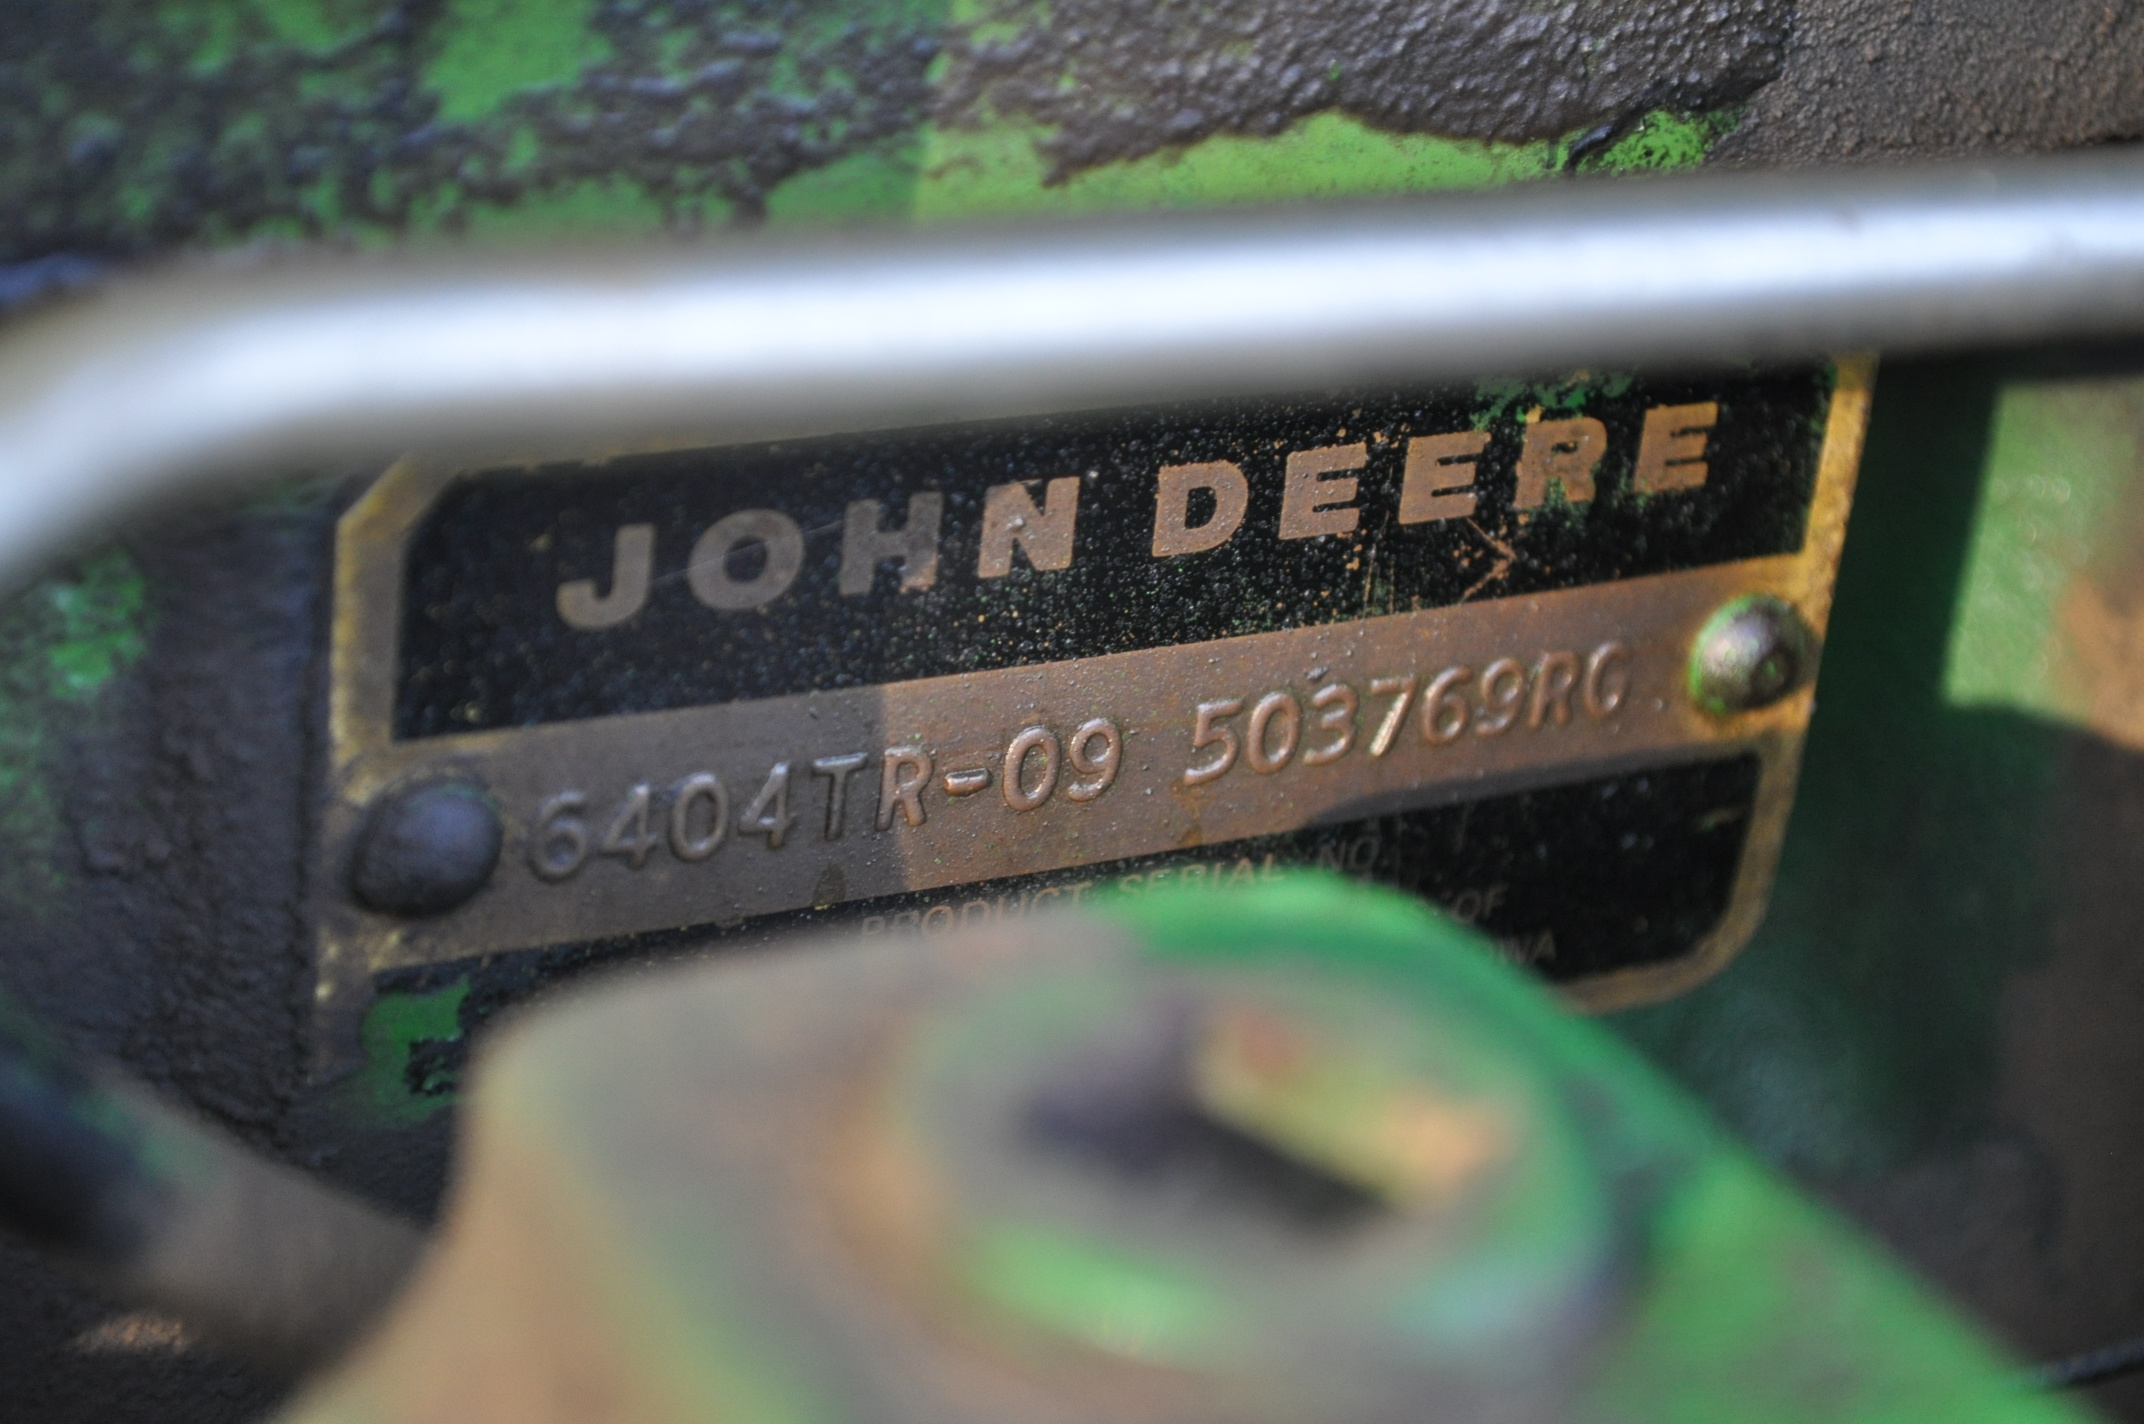 John Deere 4430 tractor, C/H/A, 18.4-38 duals, 11.00-16 front, front weights, Quad range, 2 hyd, 3 - Image 12 of 18